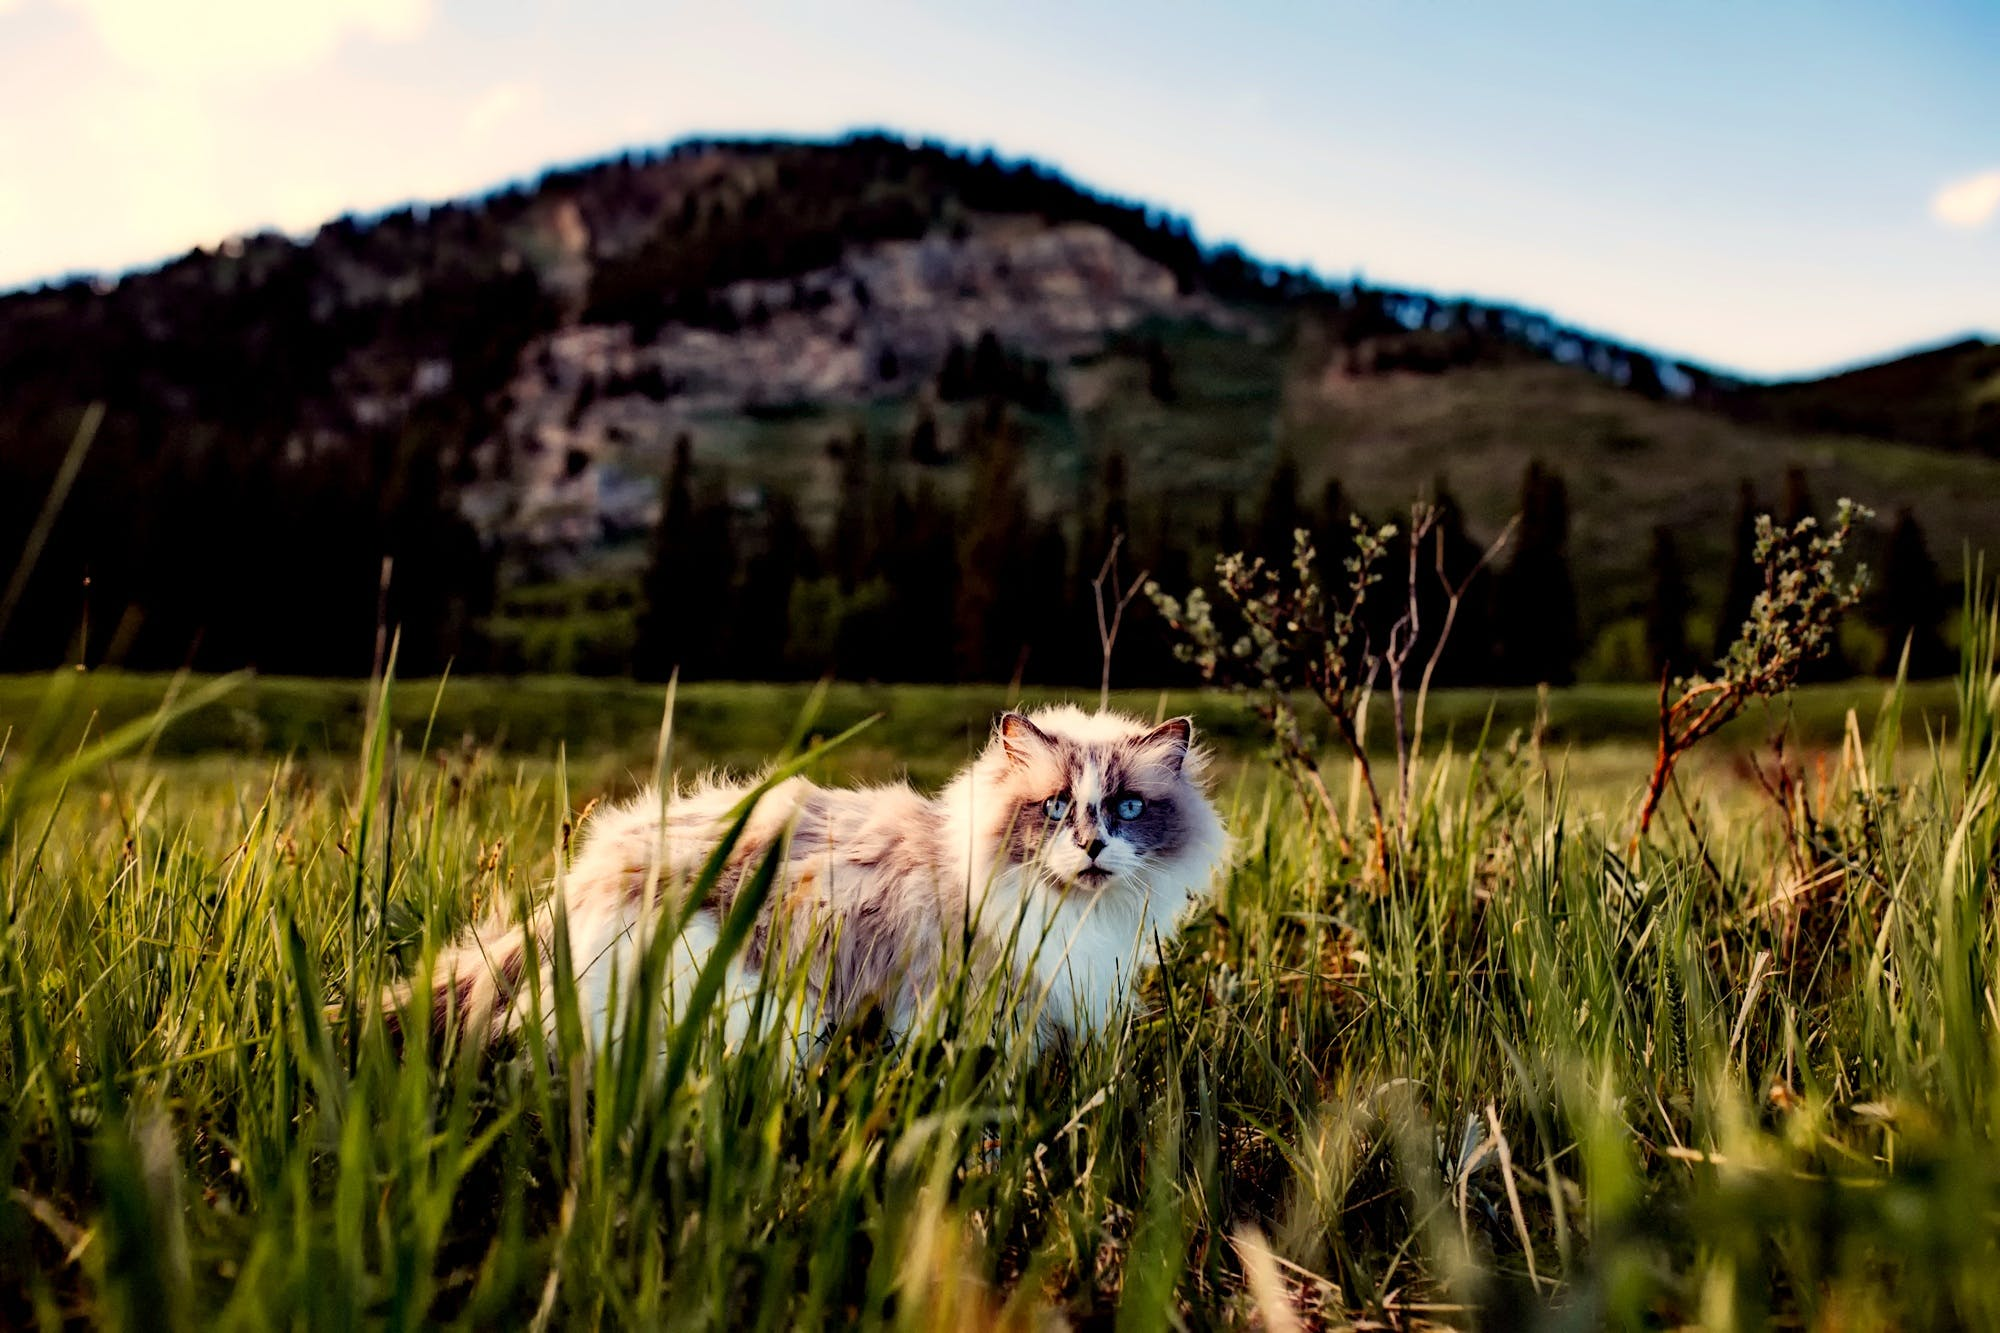 White Cat on Grass Field